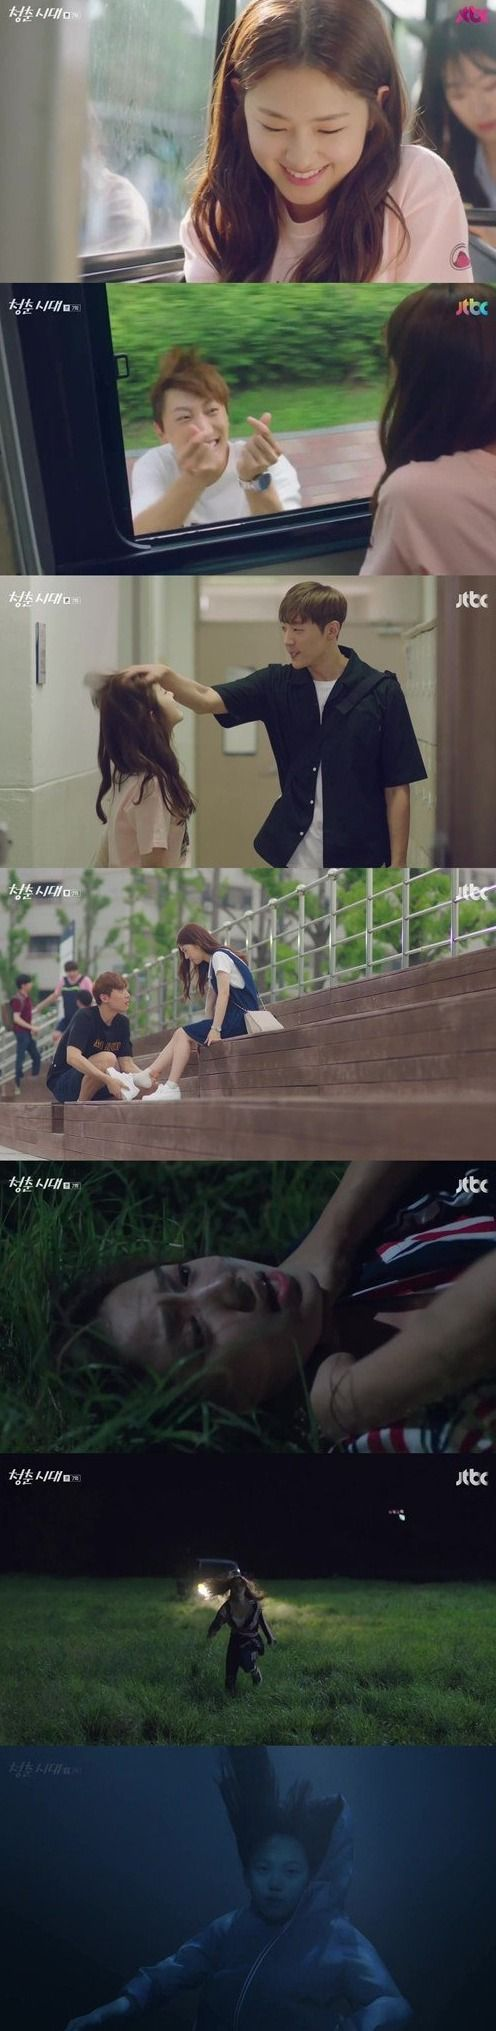 Added episodes 7 and 8 captures for the Korean drama 'Age of Youth'.